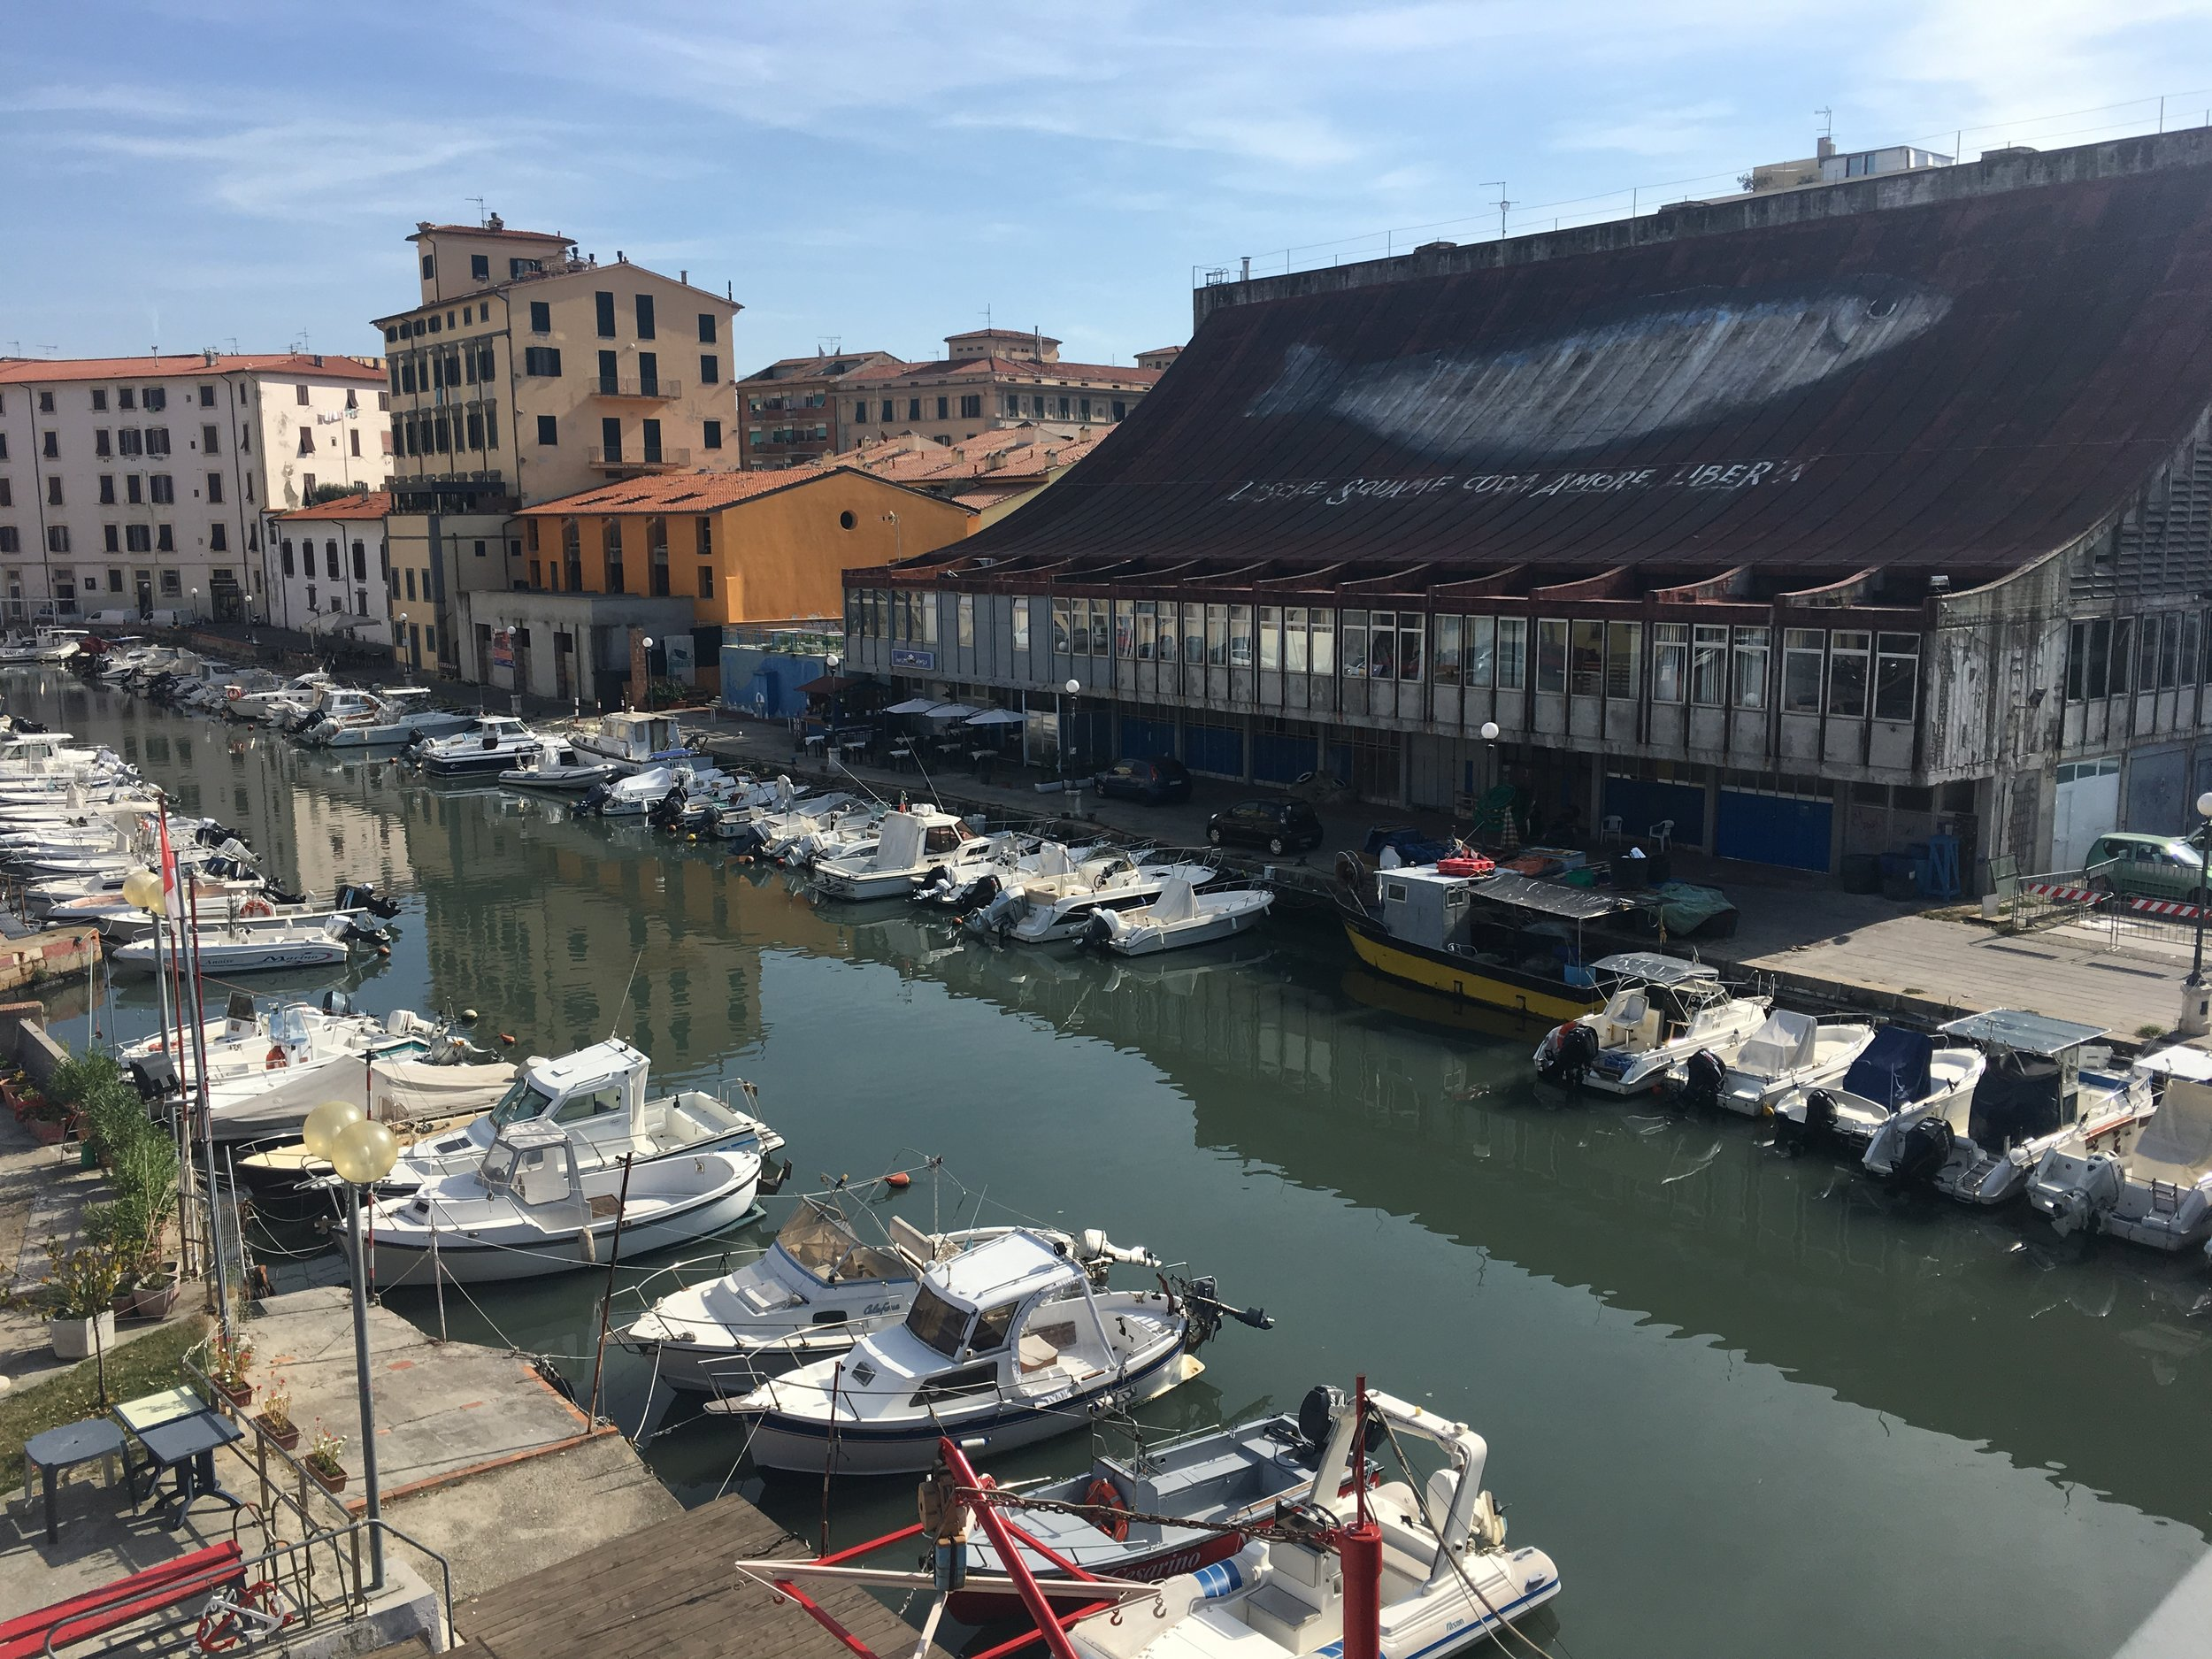 Livorno - looked like an old fish market